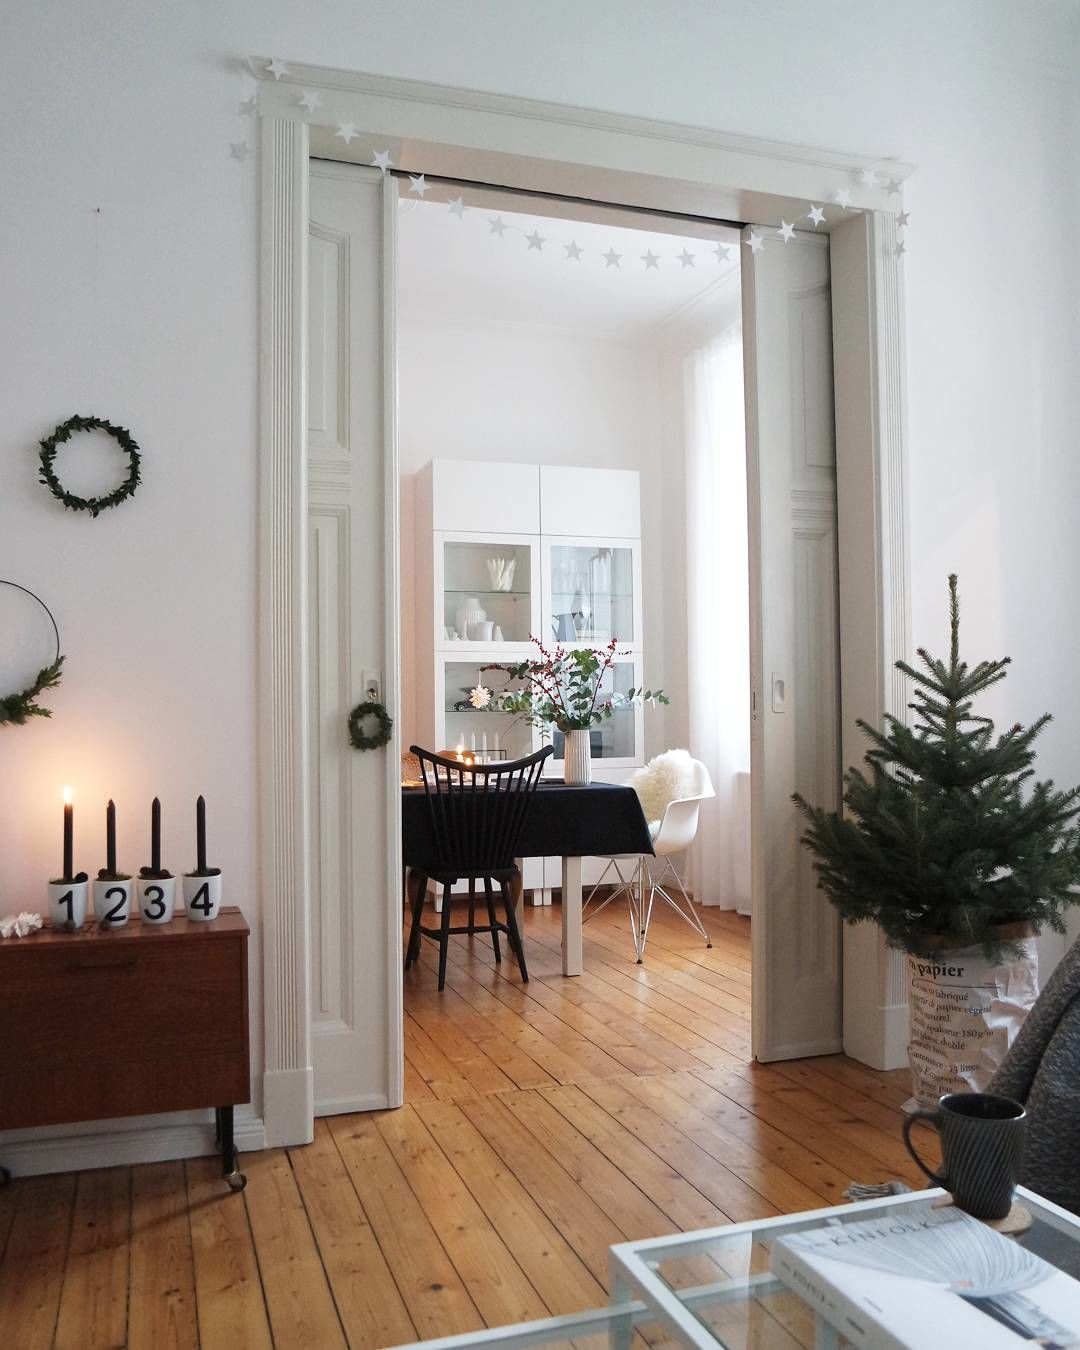 Esszimmer Deko. 1. Advent